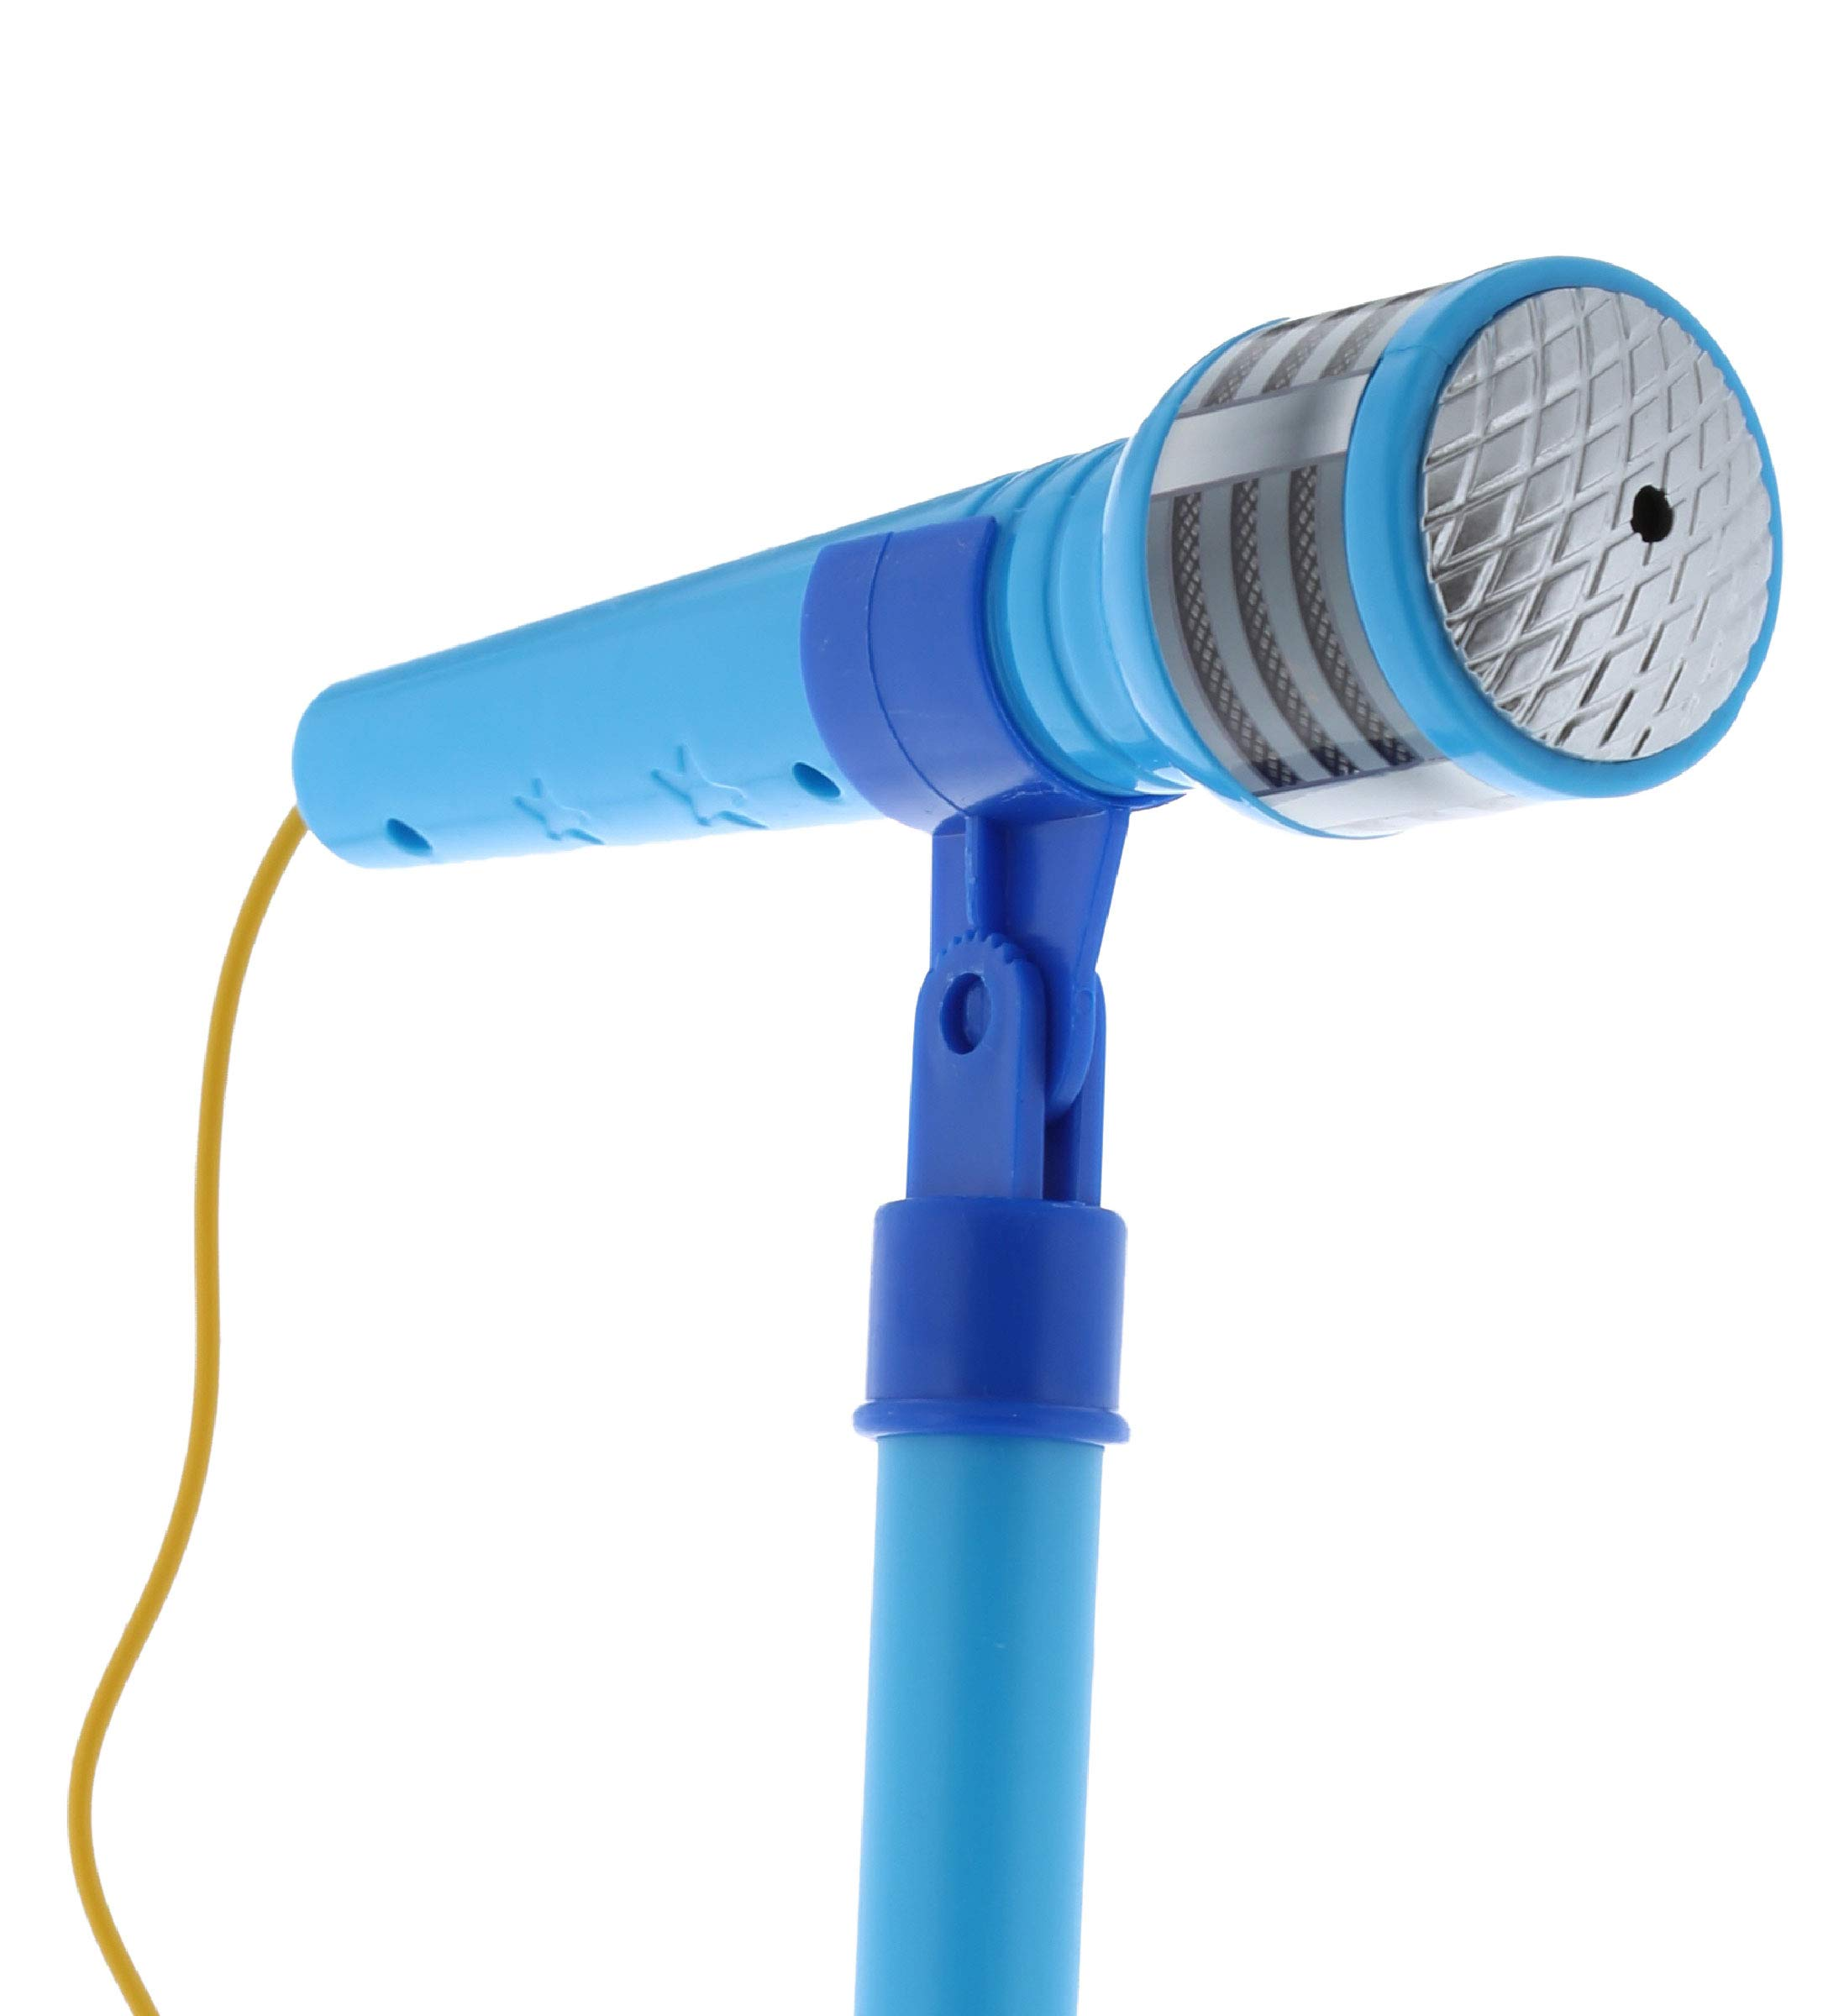 Mozlly Blue Light Up Karaoke Machine with Toy Microphone & Adjustable Stand, Connect to MP3 Player AUX Smart Phones for Solo Singing Parties Sing-A-Along Built in Speaker Flashing Lights for Kids by Mozlly (Image #10)